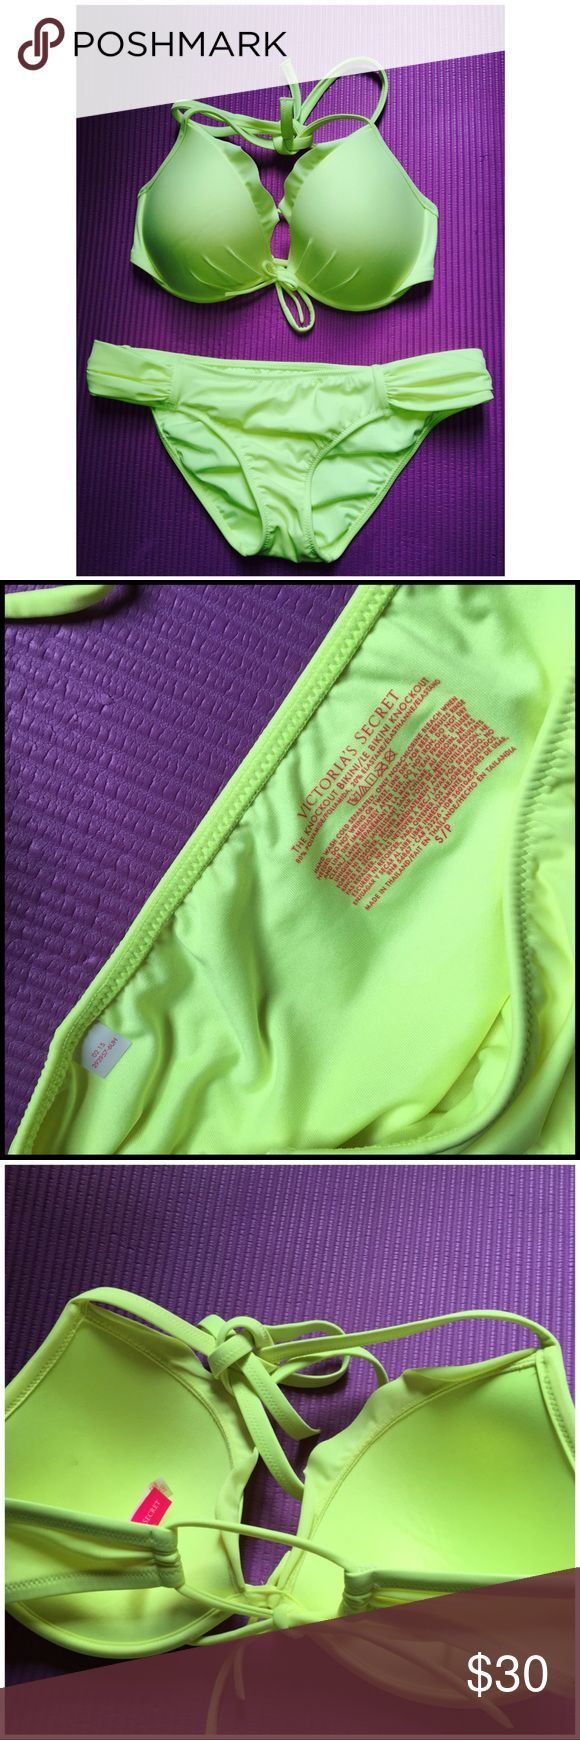 Vitoria Secret's Bathing Suits Great condition. The top is size 34D, and the bottom is size Small. The color is neon yellow-ish Victoria's Secret Swim Bikinis